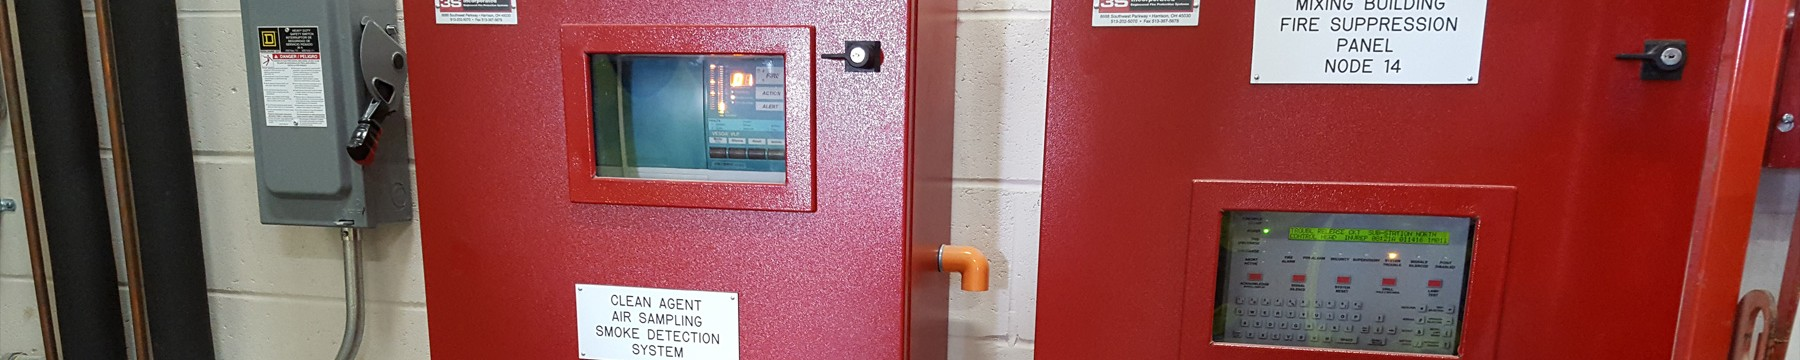 Flame, Gas, Heat, Smoke, Fire Detection Systems